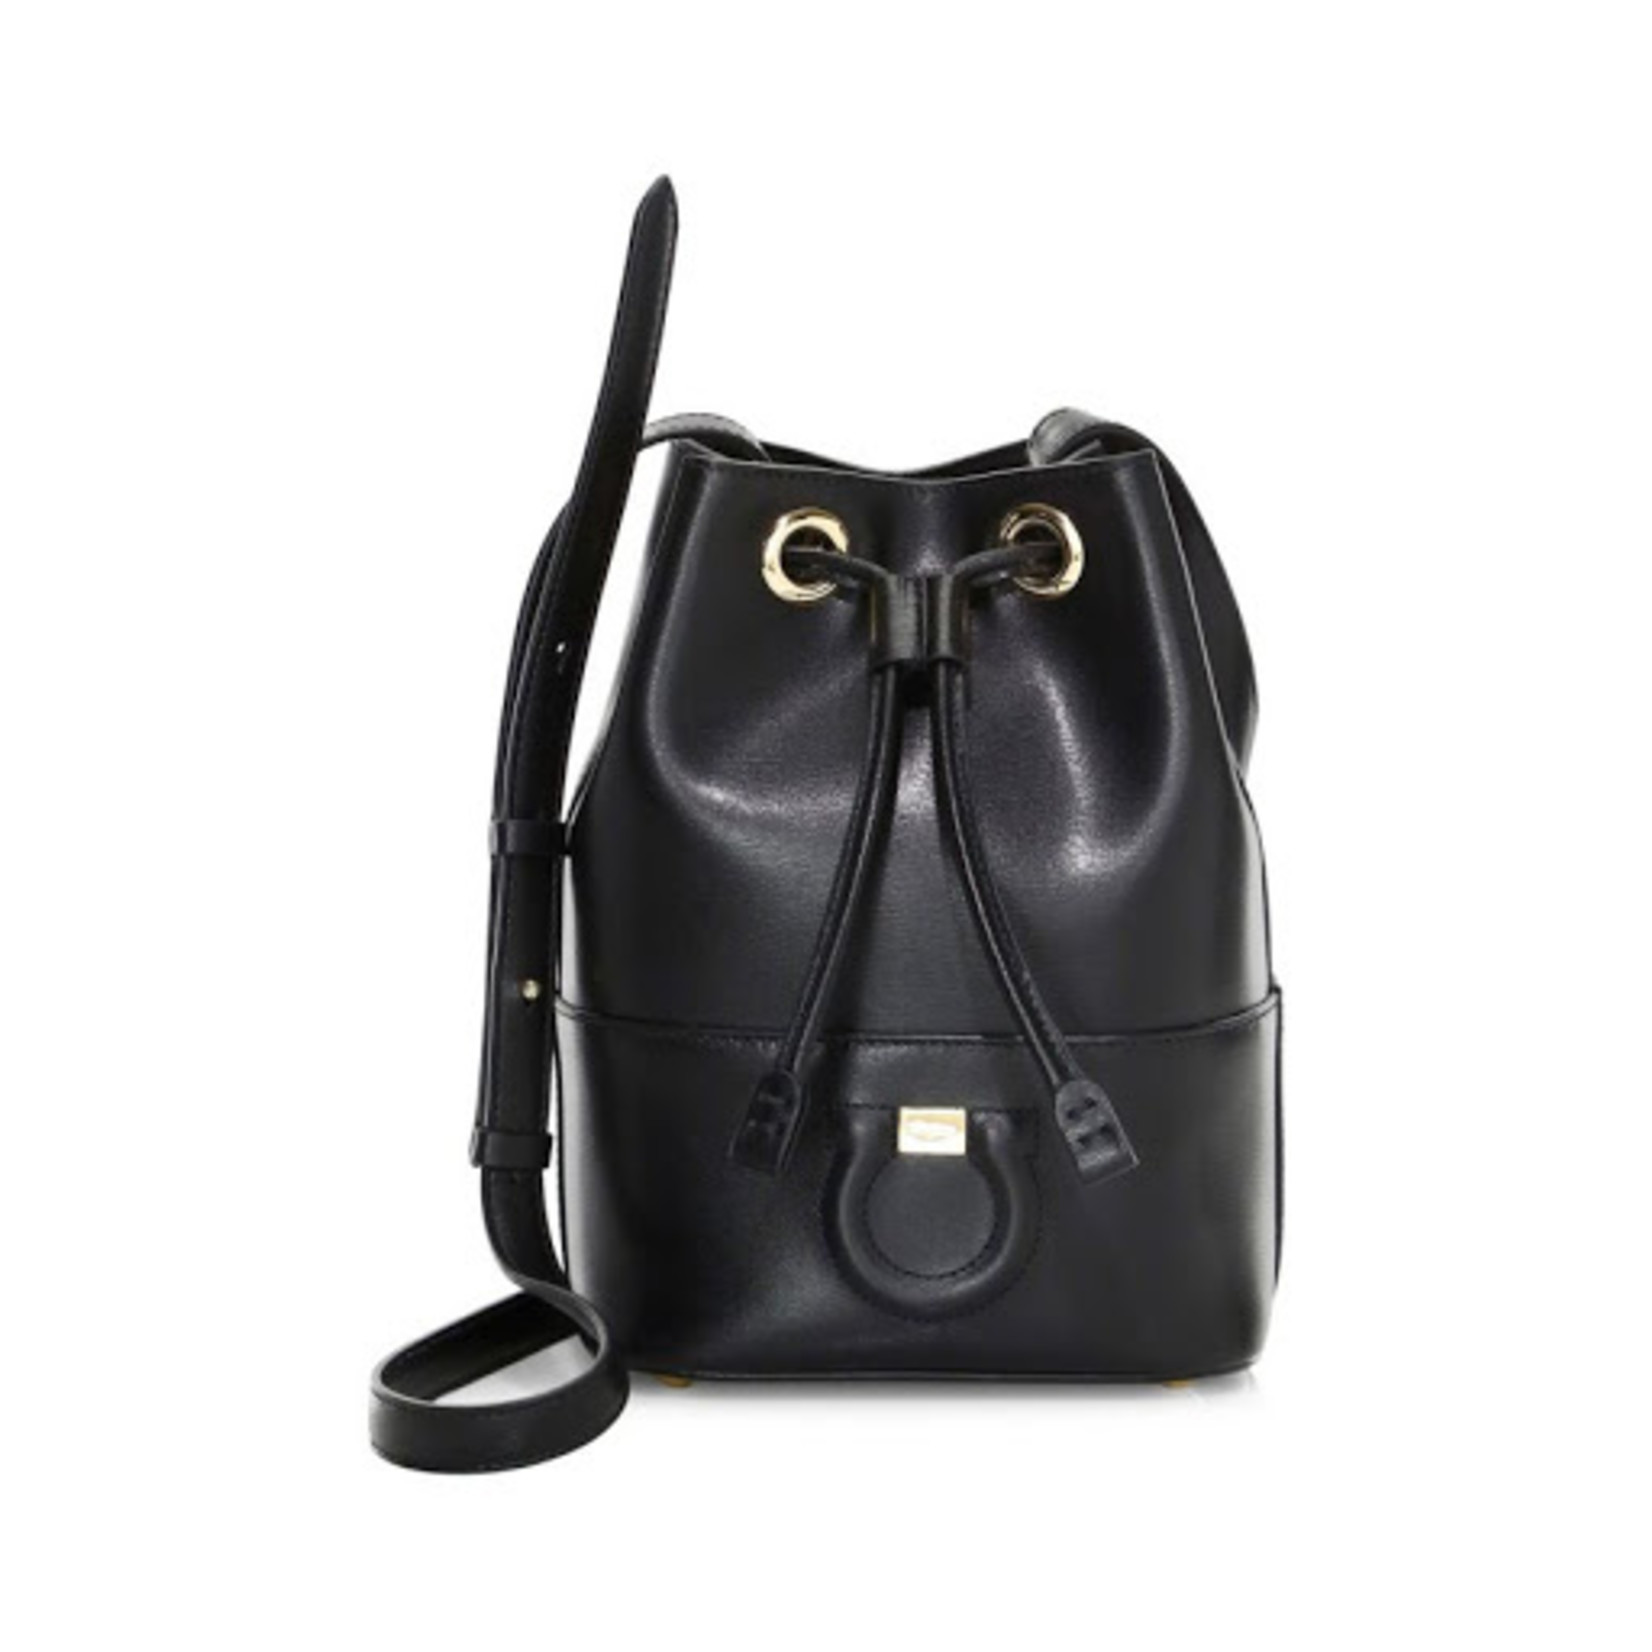 SALVATORE FERRAGAMO SALVATORE FERRAGAMO - GANCINI BUCKET BAG - BLACK - 726264